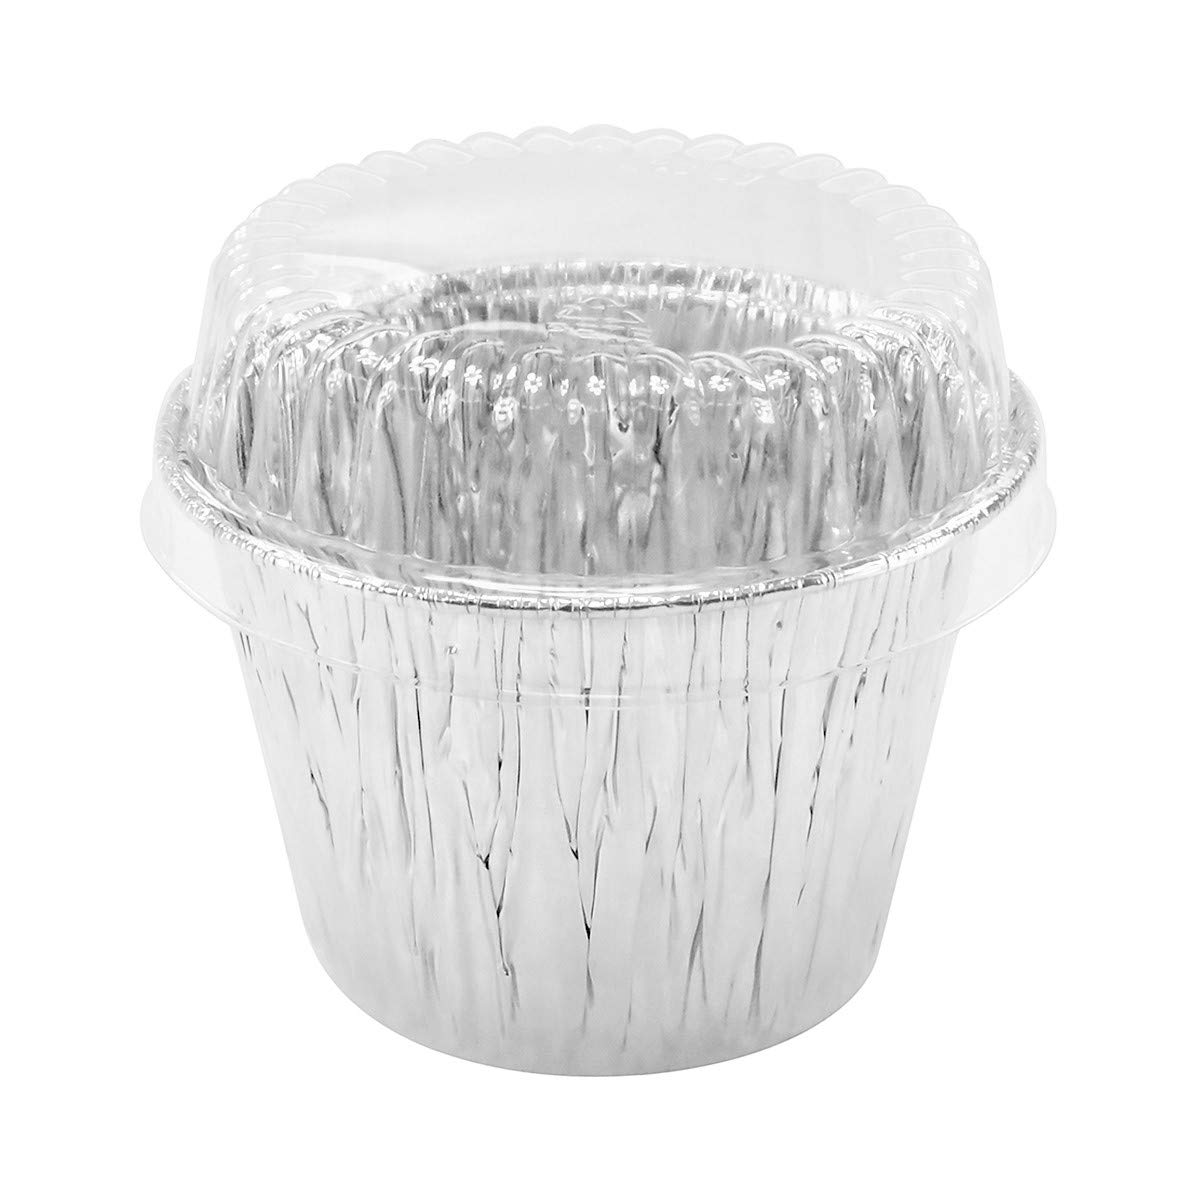 Disposable Aluminum 7 oz. Baking Cups/Cake Cups/Dessert Cups #1210P (50) by AGIANT (Image #1)